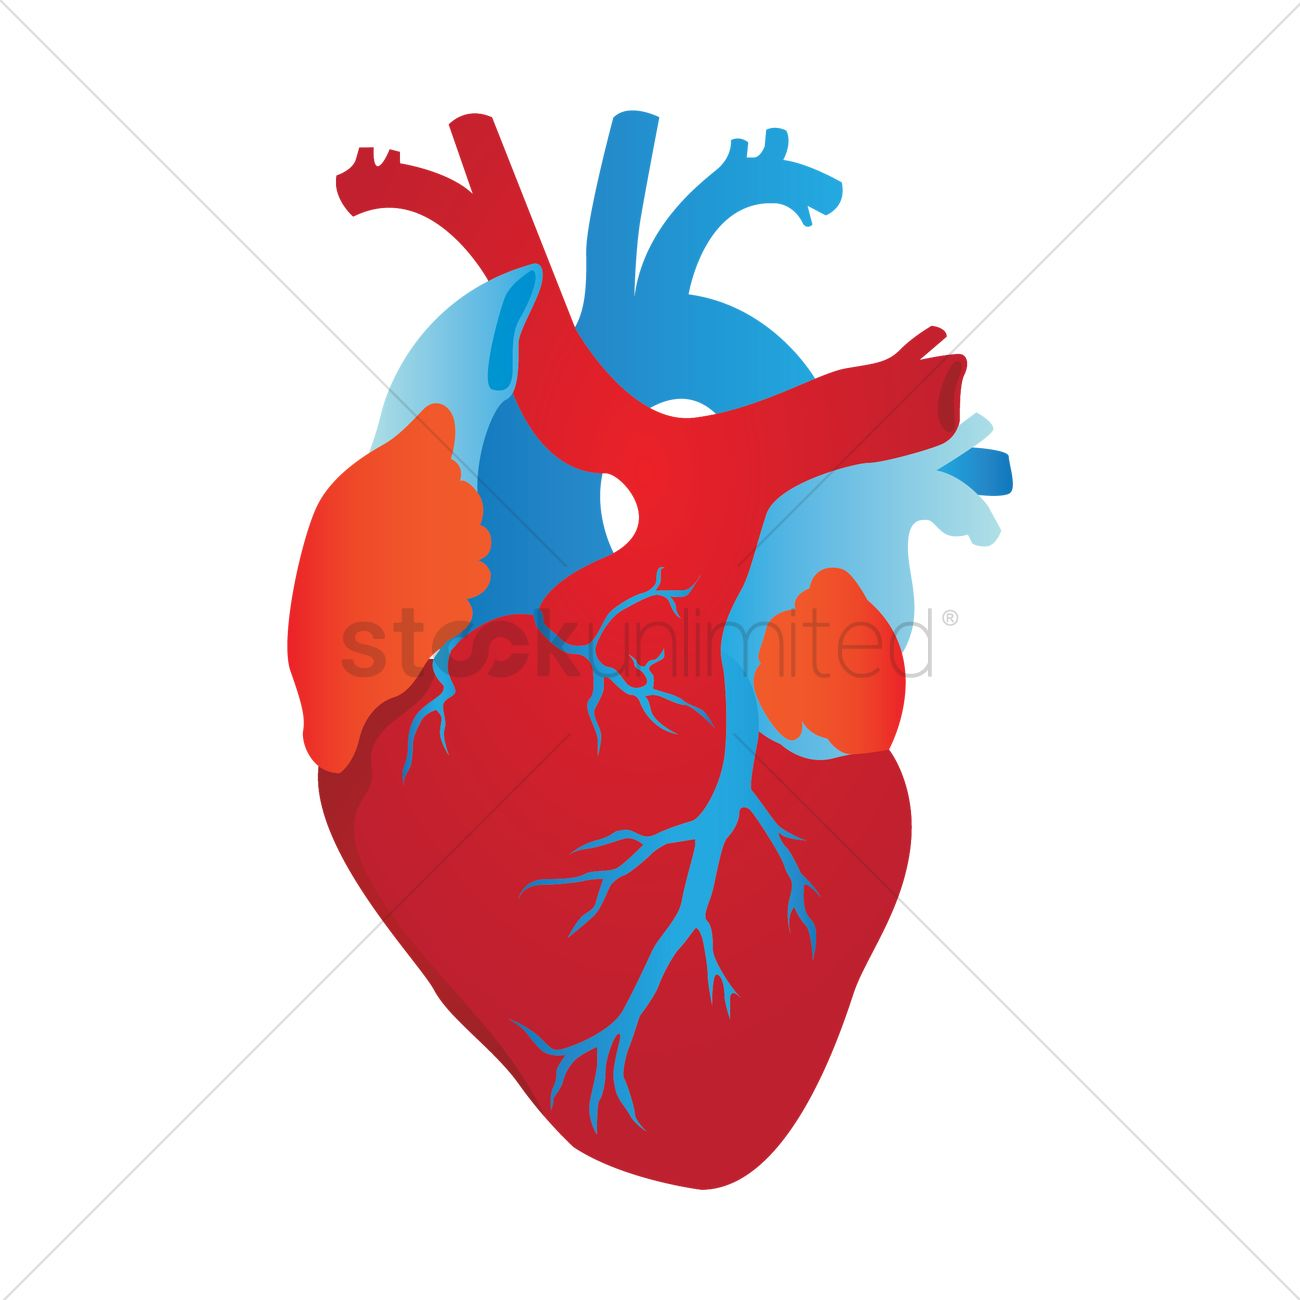 human heart vector image 1866826 stockunlimited rh stockunlimited com human heart vector png human heart vector icon